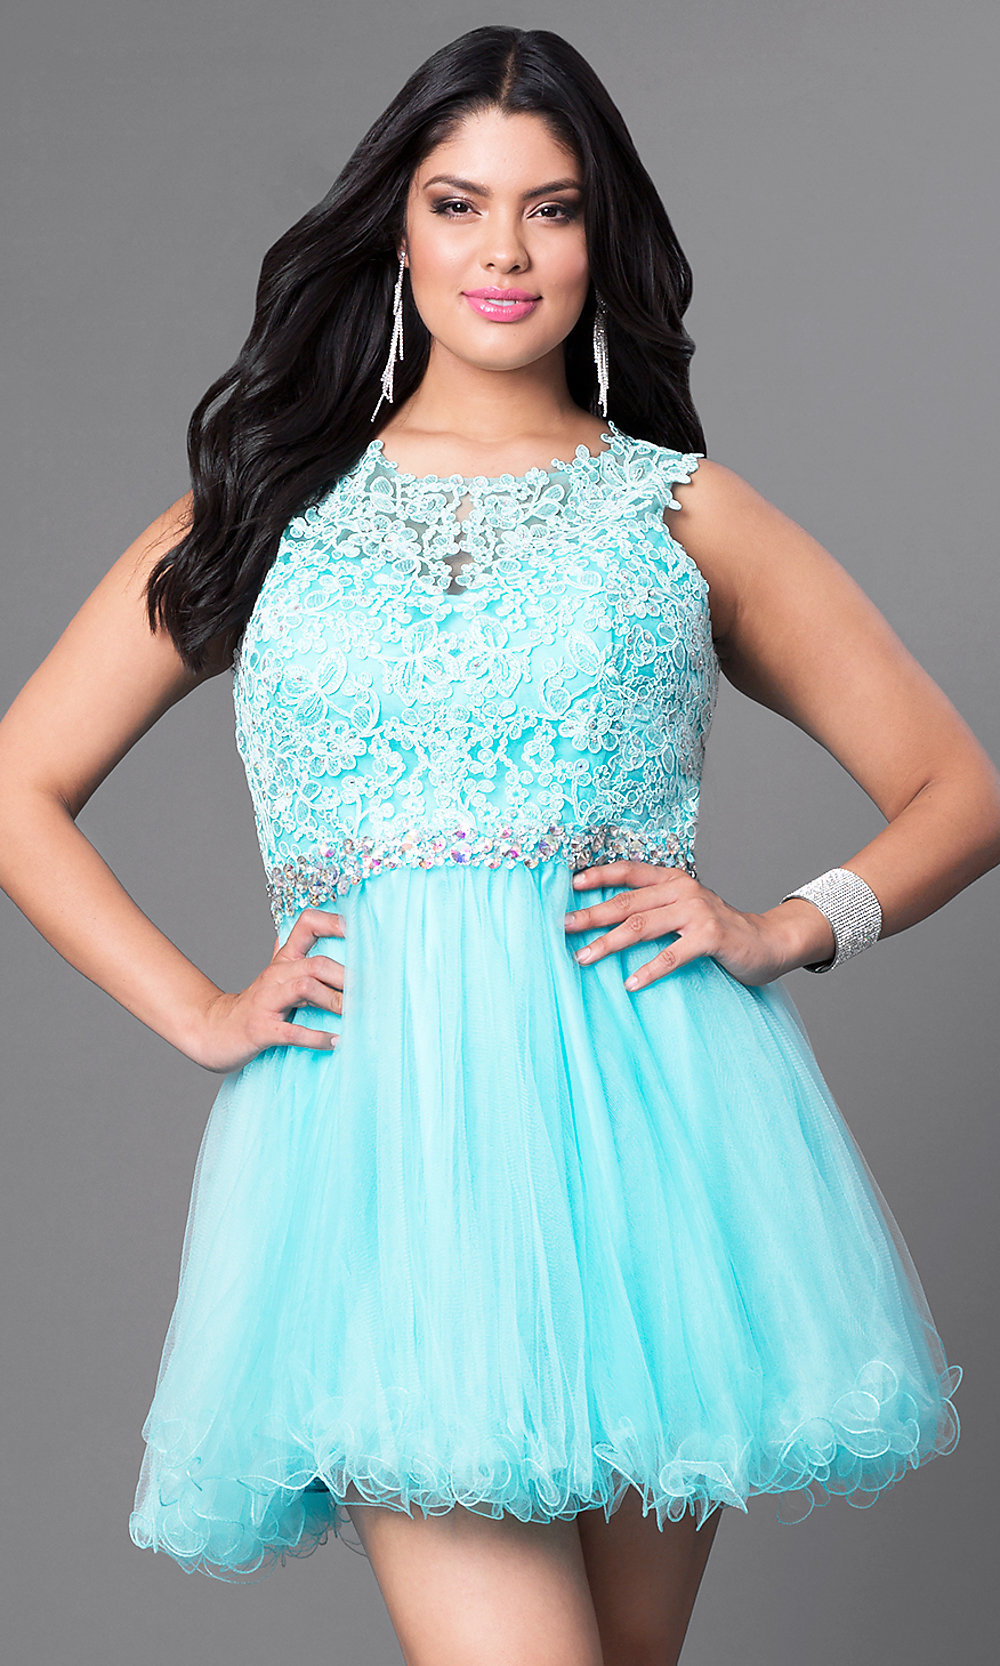 Plus Size Tulle Short Prom Dress With Lace Promgirl